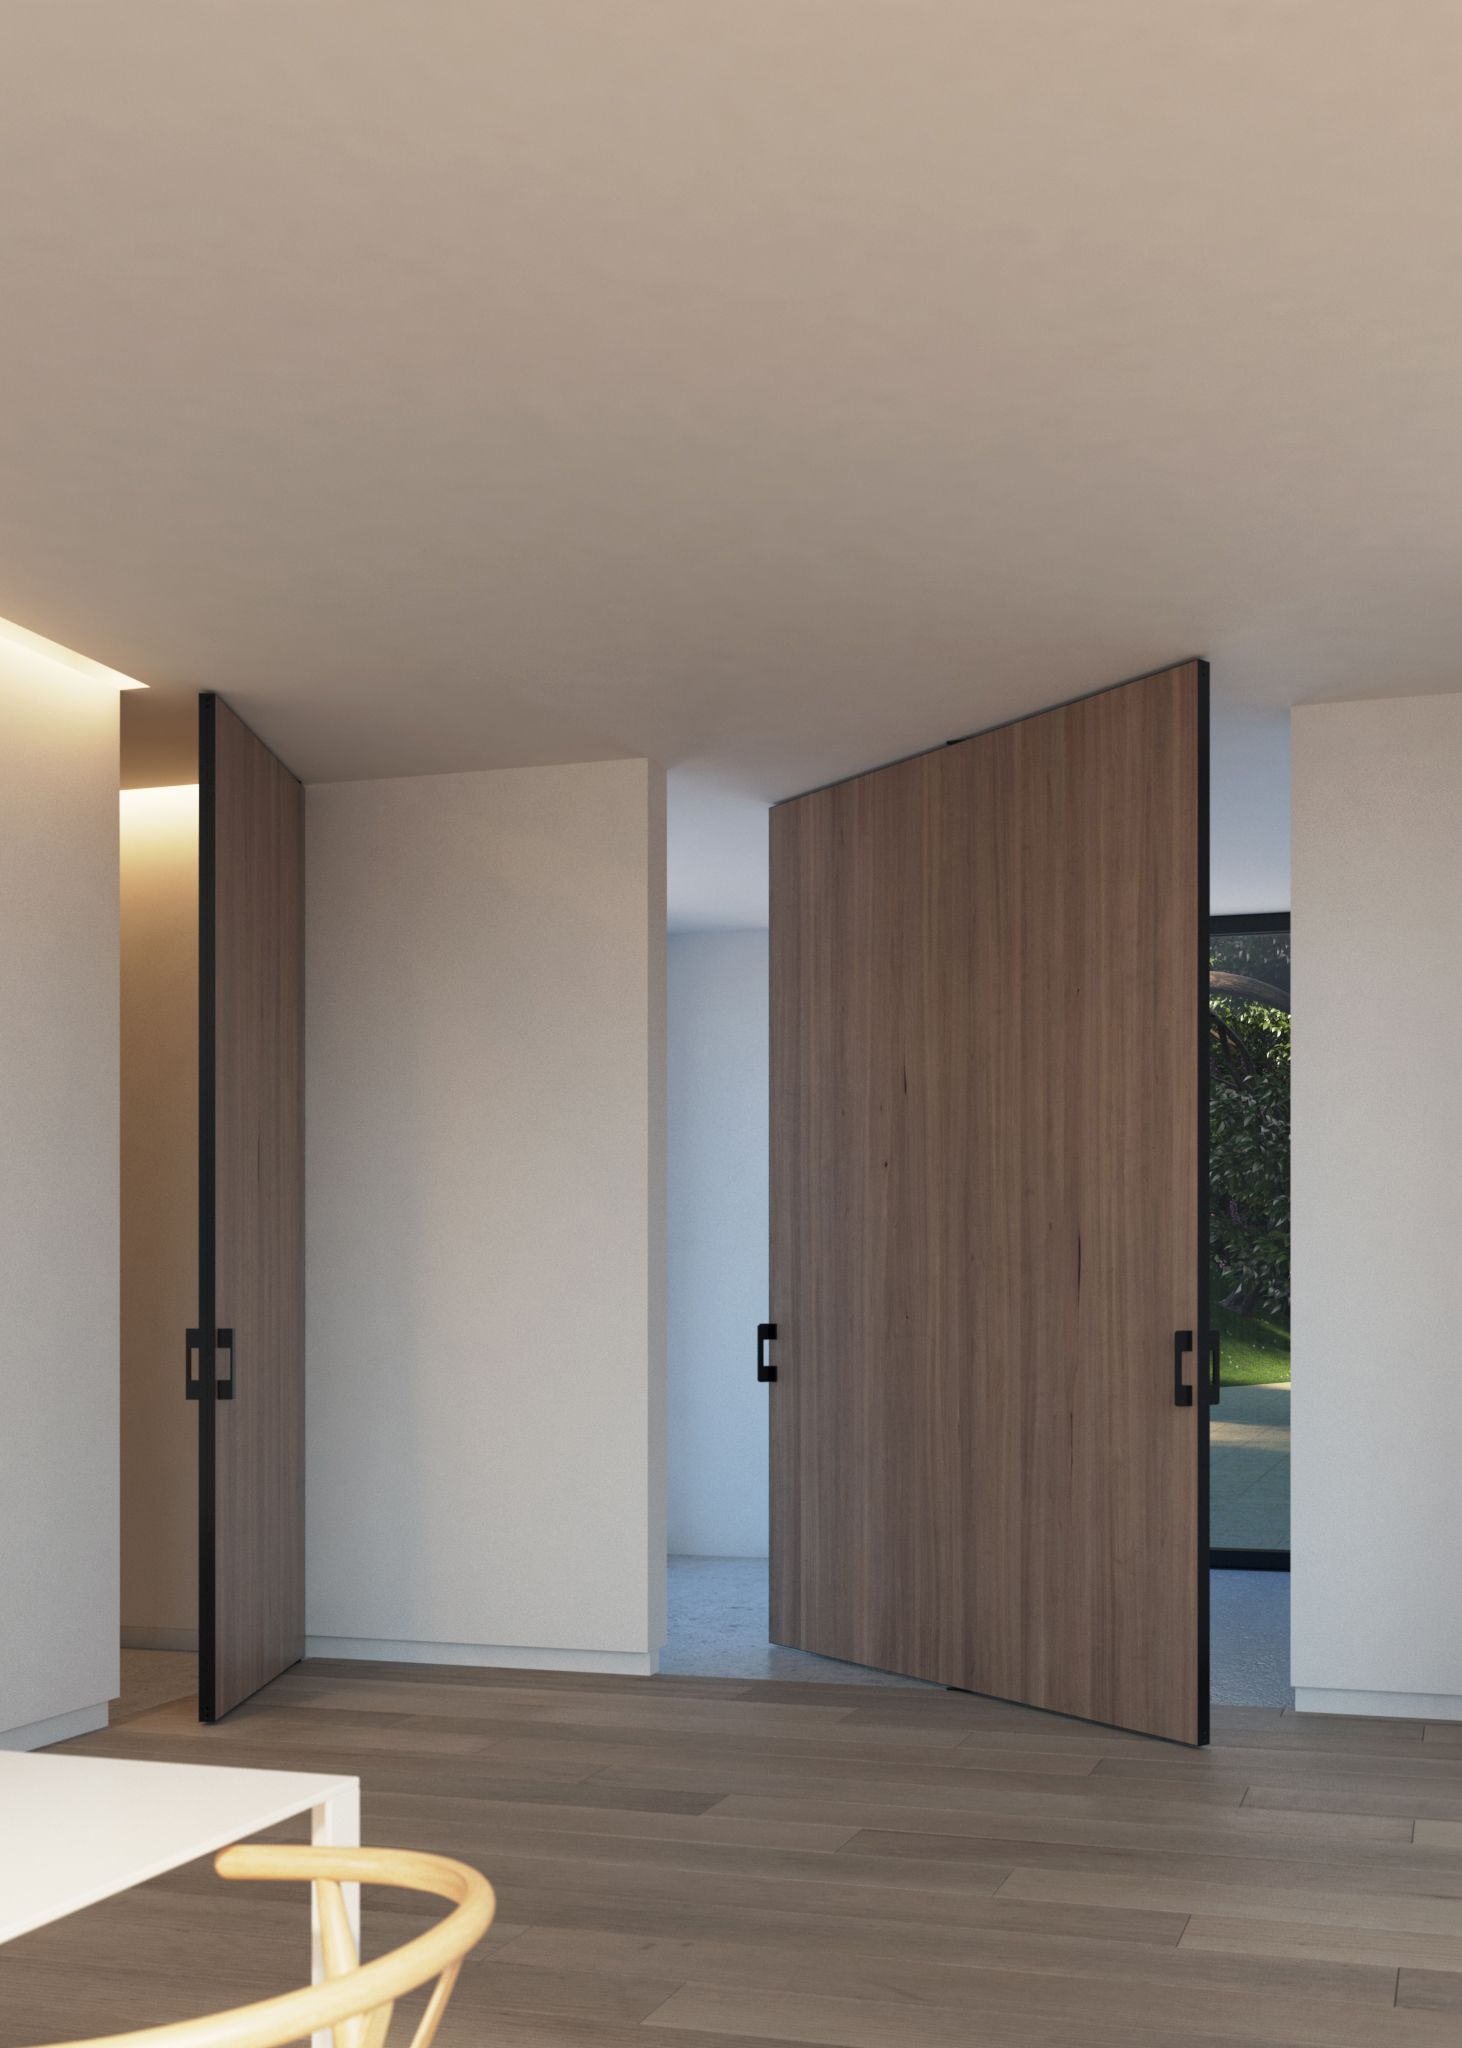 Large Pivot Doors With Either Central Of Offset Axis Pivoting Hinges Diy Kit Custom Made By Portapivot For Co Pivot Doors Wood Doors Interior Doors Interior